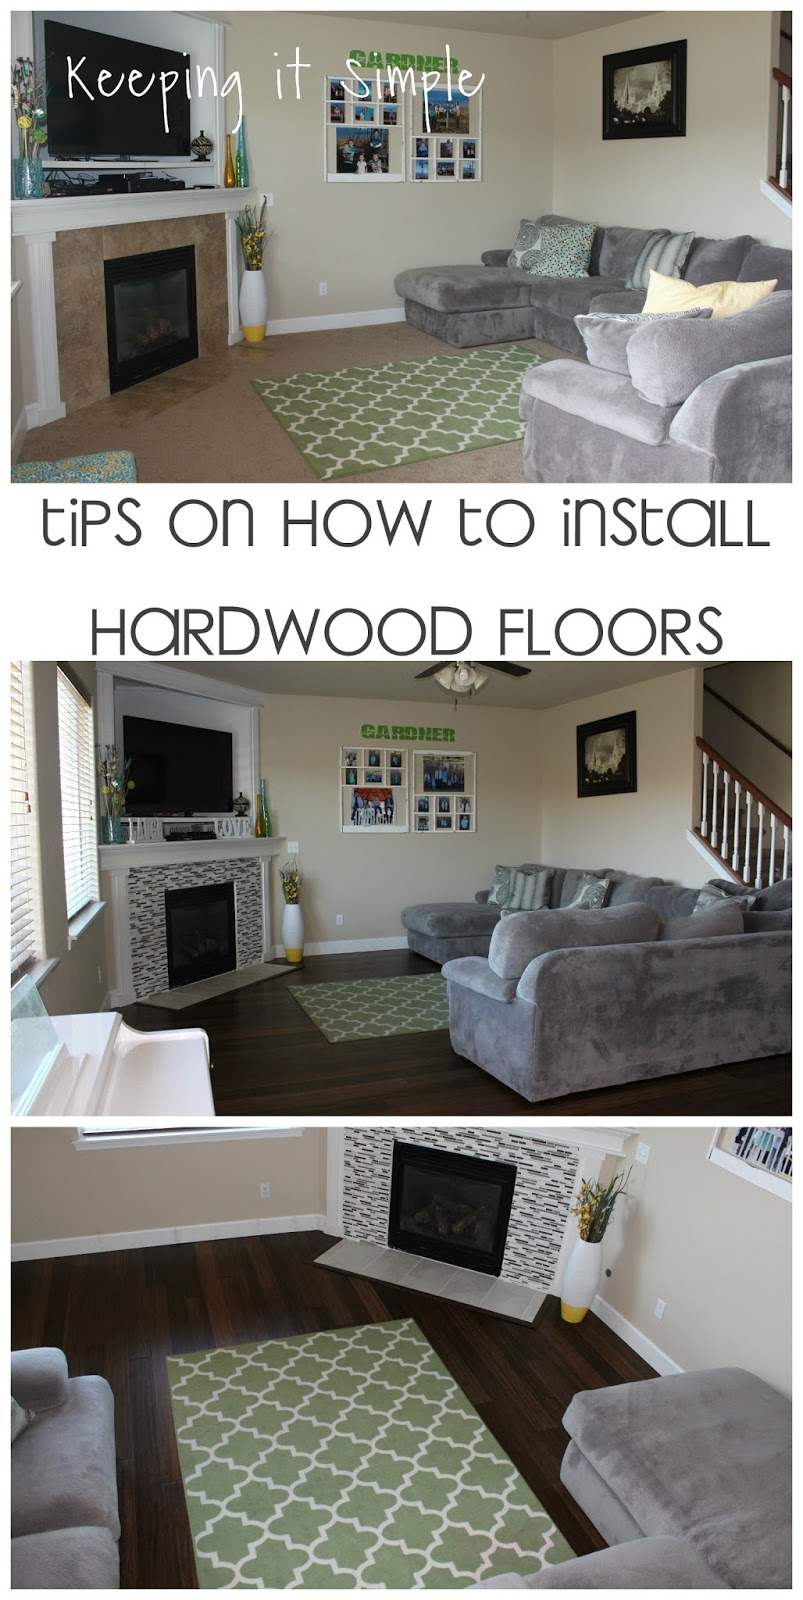 Hardwood Floor Installation Tips